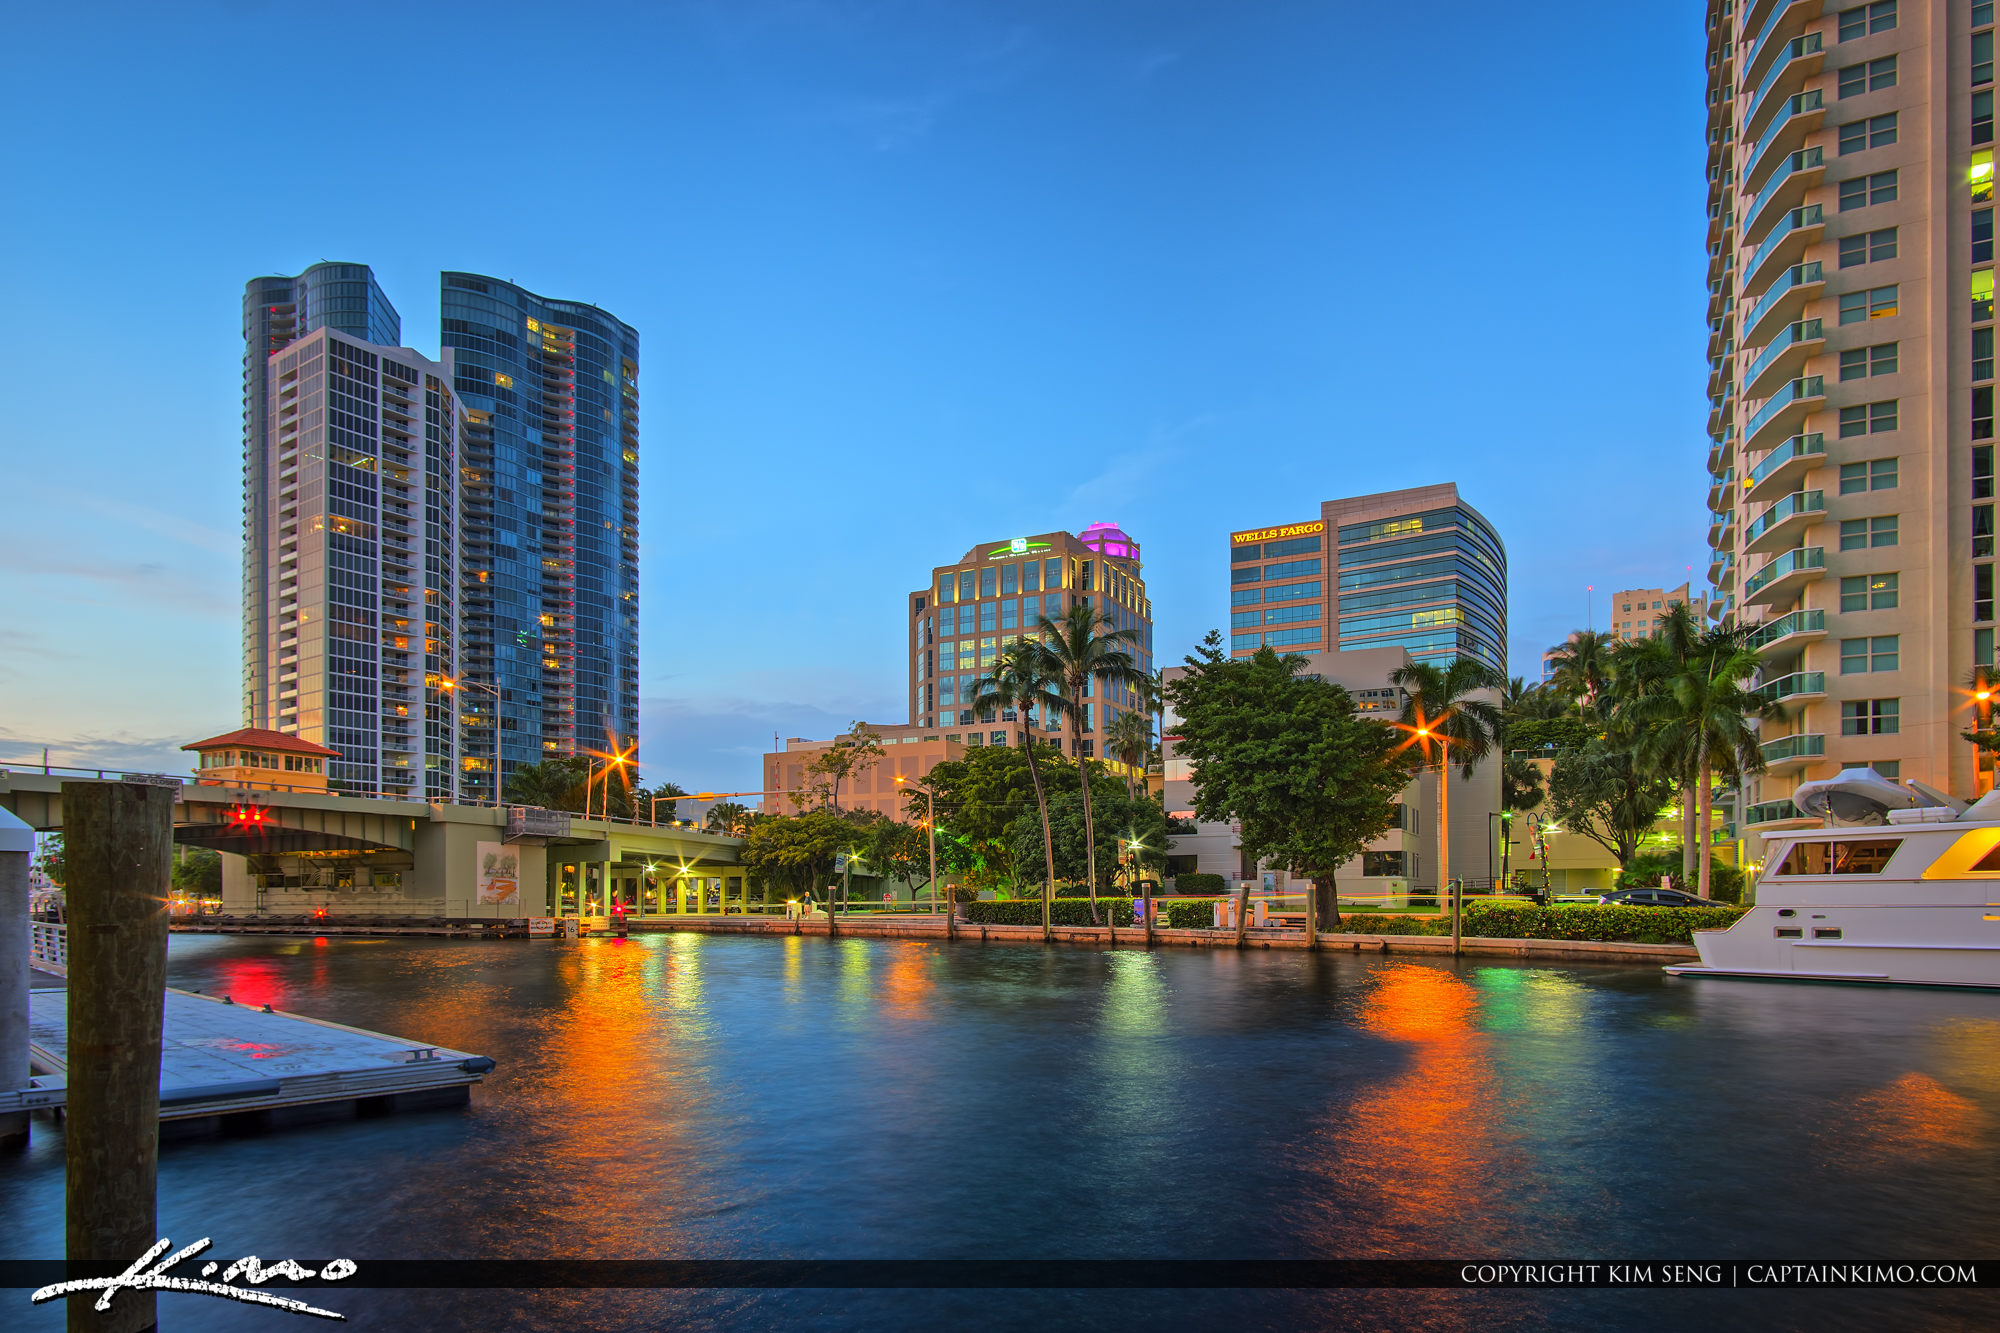 Fort Lauderdale Downtown along the New River Broward County